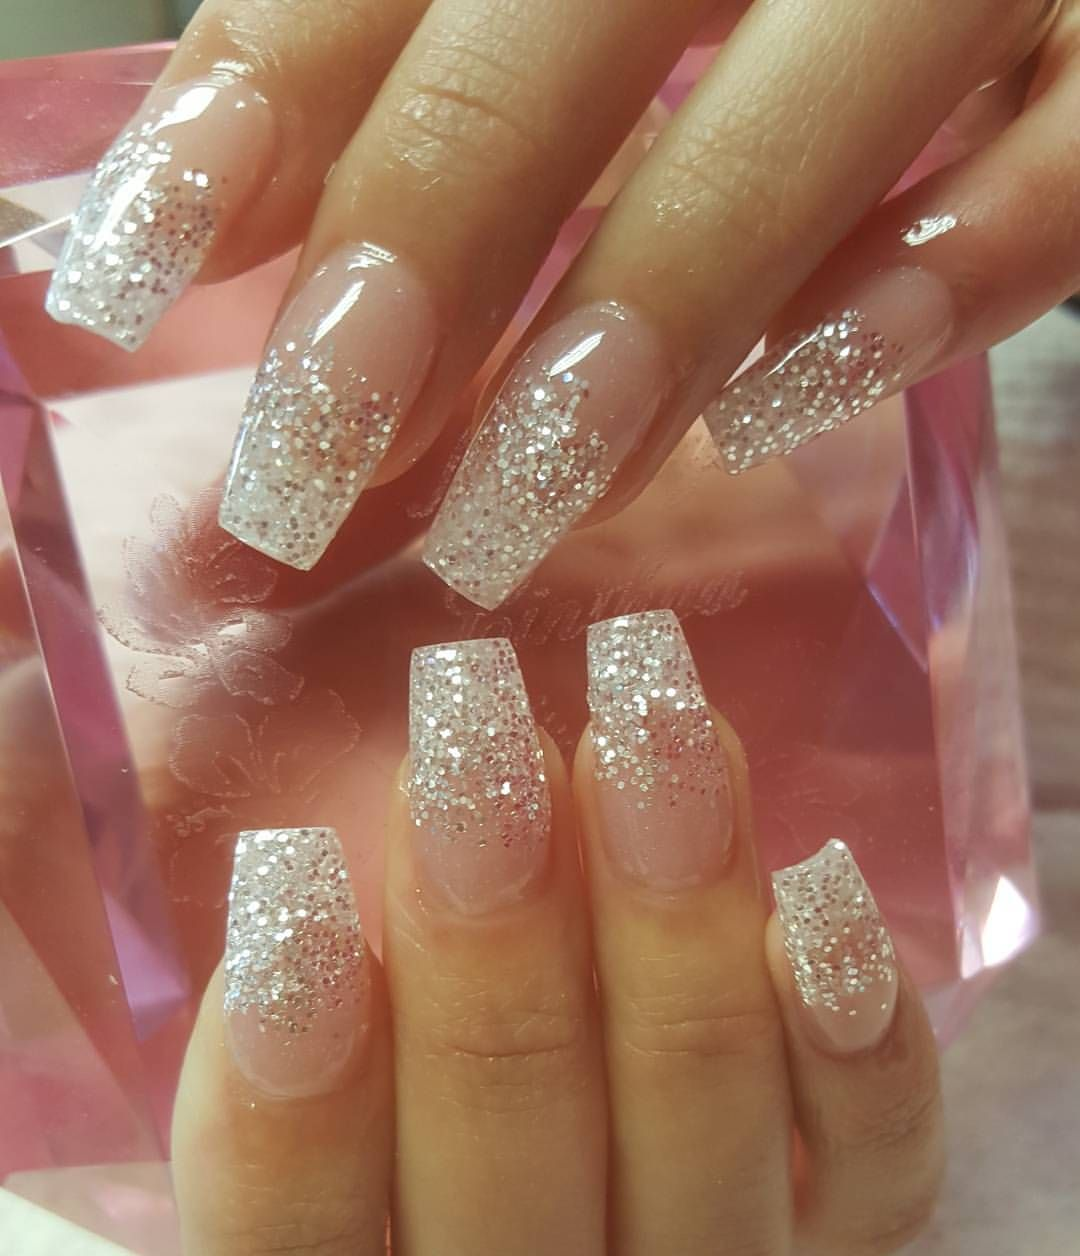 Nails By Cinthya On Instagram Nailsbycinthya Nails Nailprodigy Sculptednails Notpolish Simplenails Glitter Fade Nails Sparkly Acrylic Nails Faded Nails